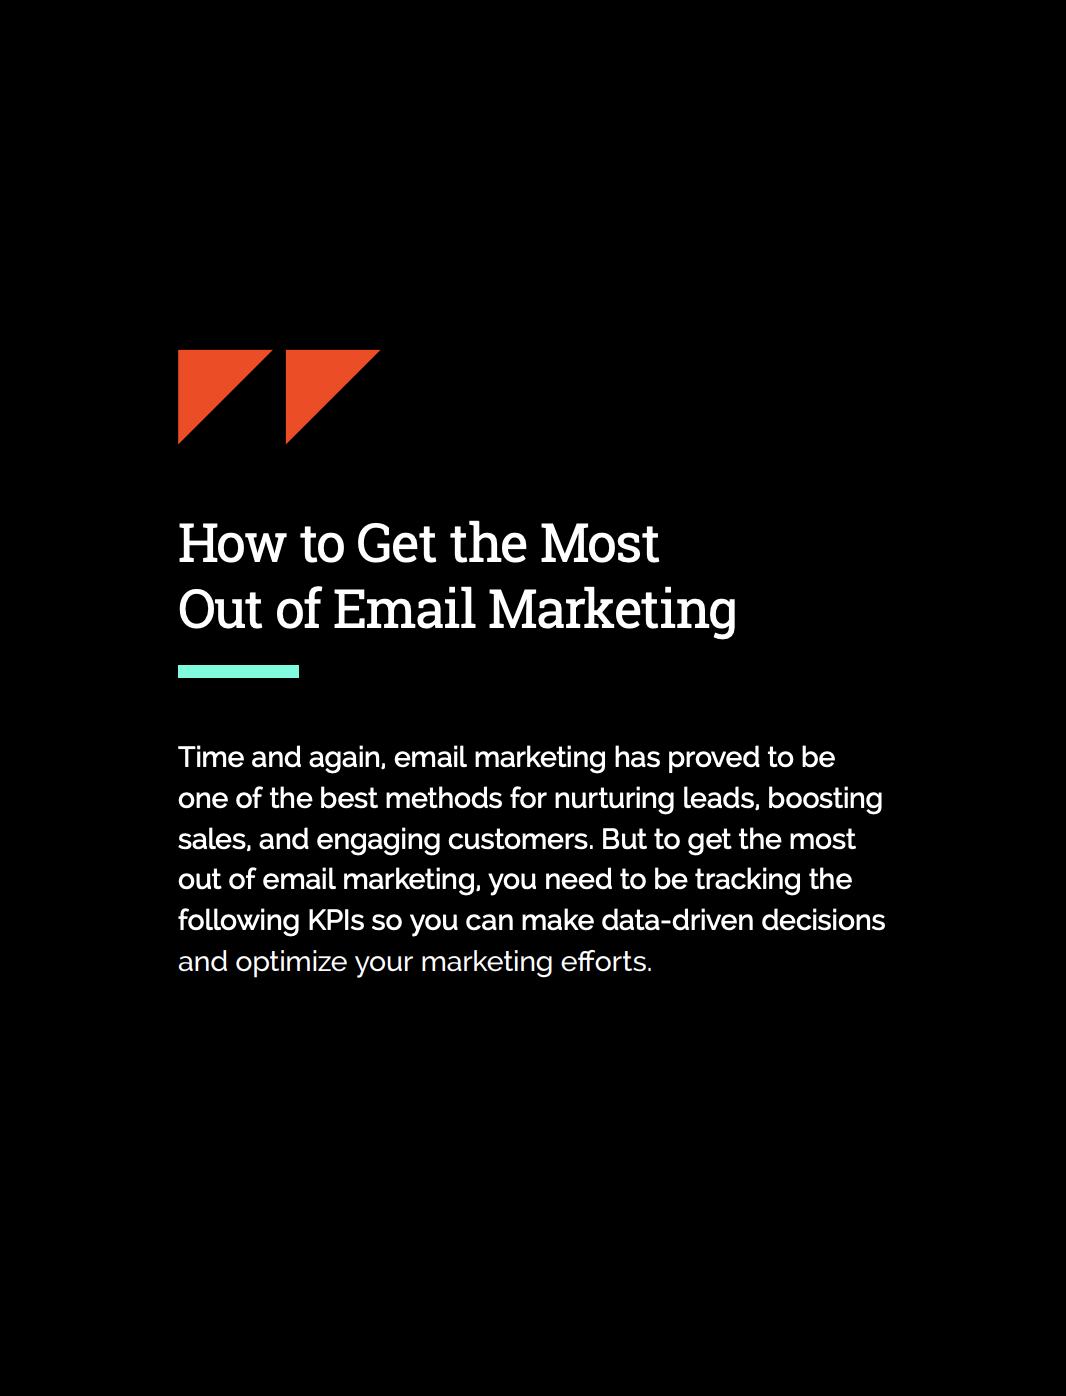 How to get the most out of email